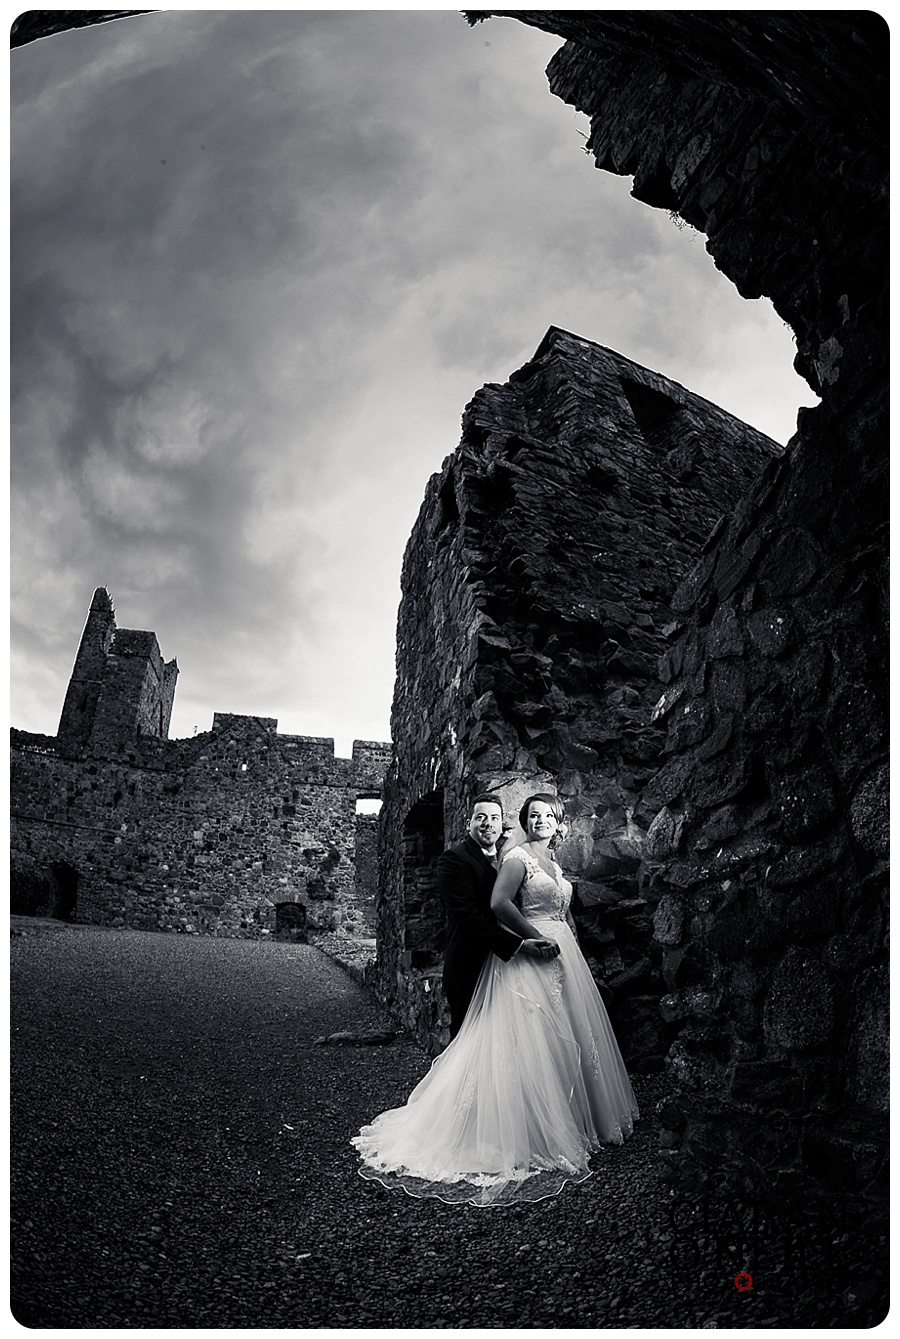 Ashlene & Kyle's wedding at the Four Seasons Hotel Carlingford by Ciaran O'Neill Photography